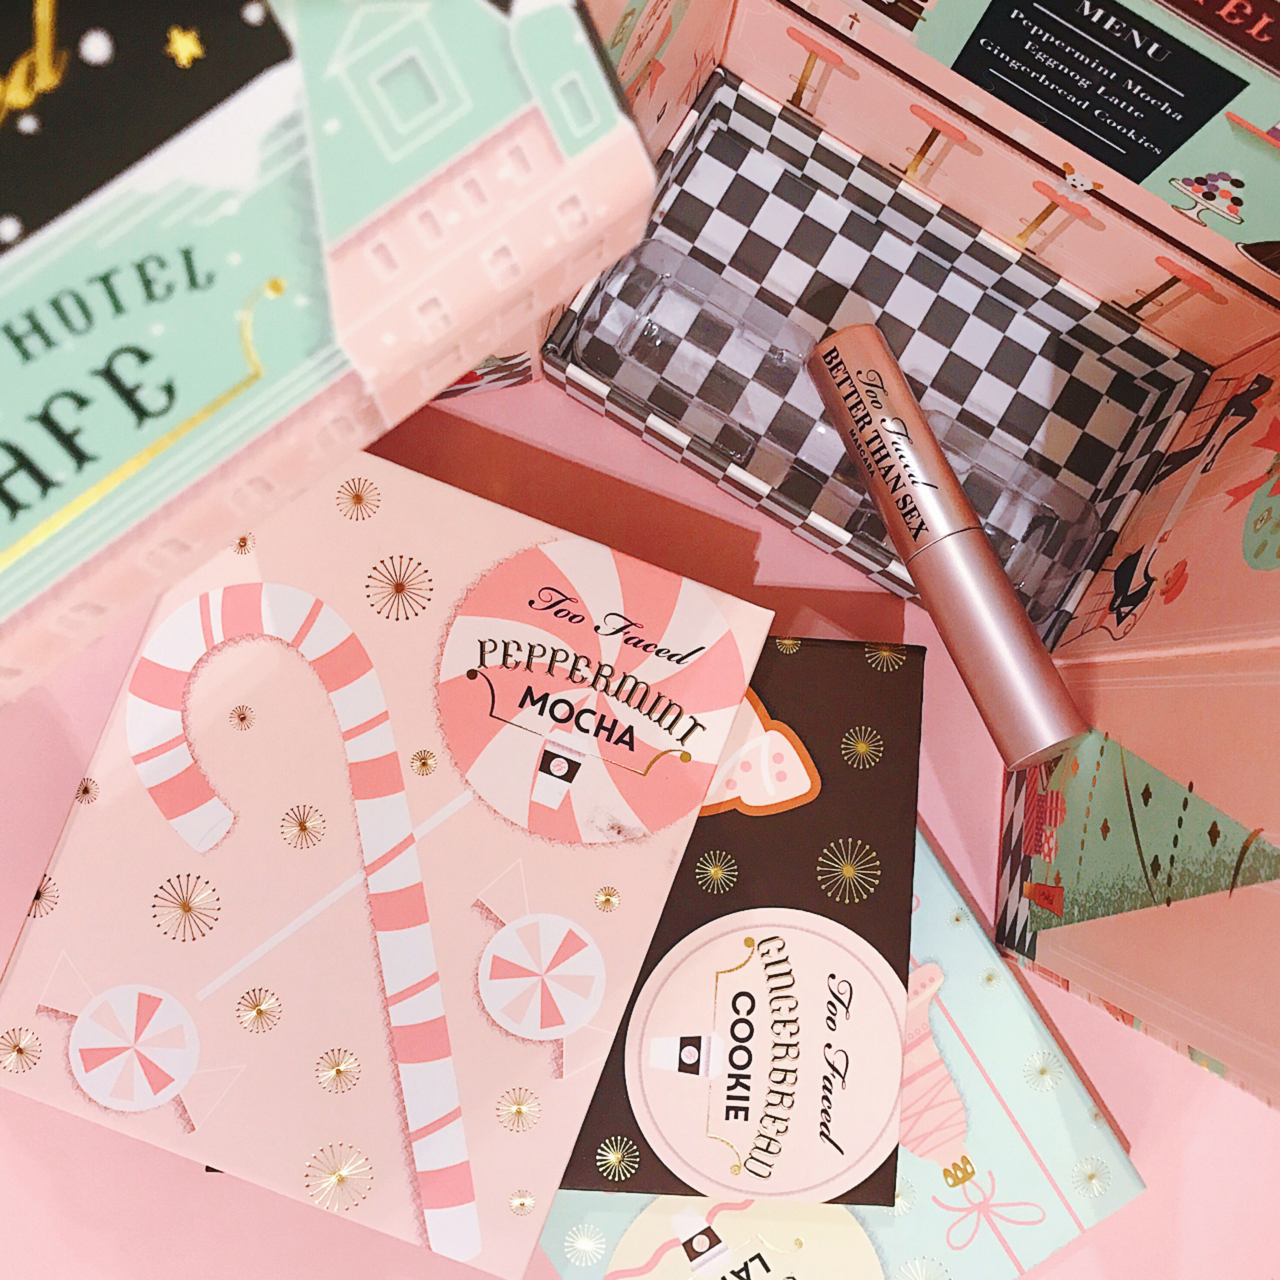 Too Faced Grand Hotel Cafe for Holiday 2016